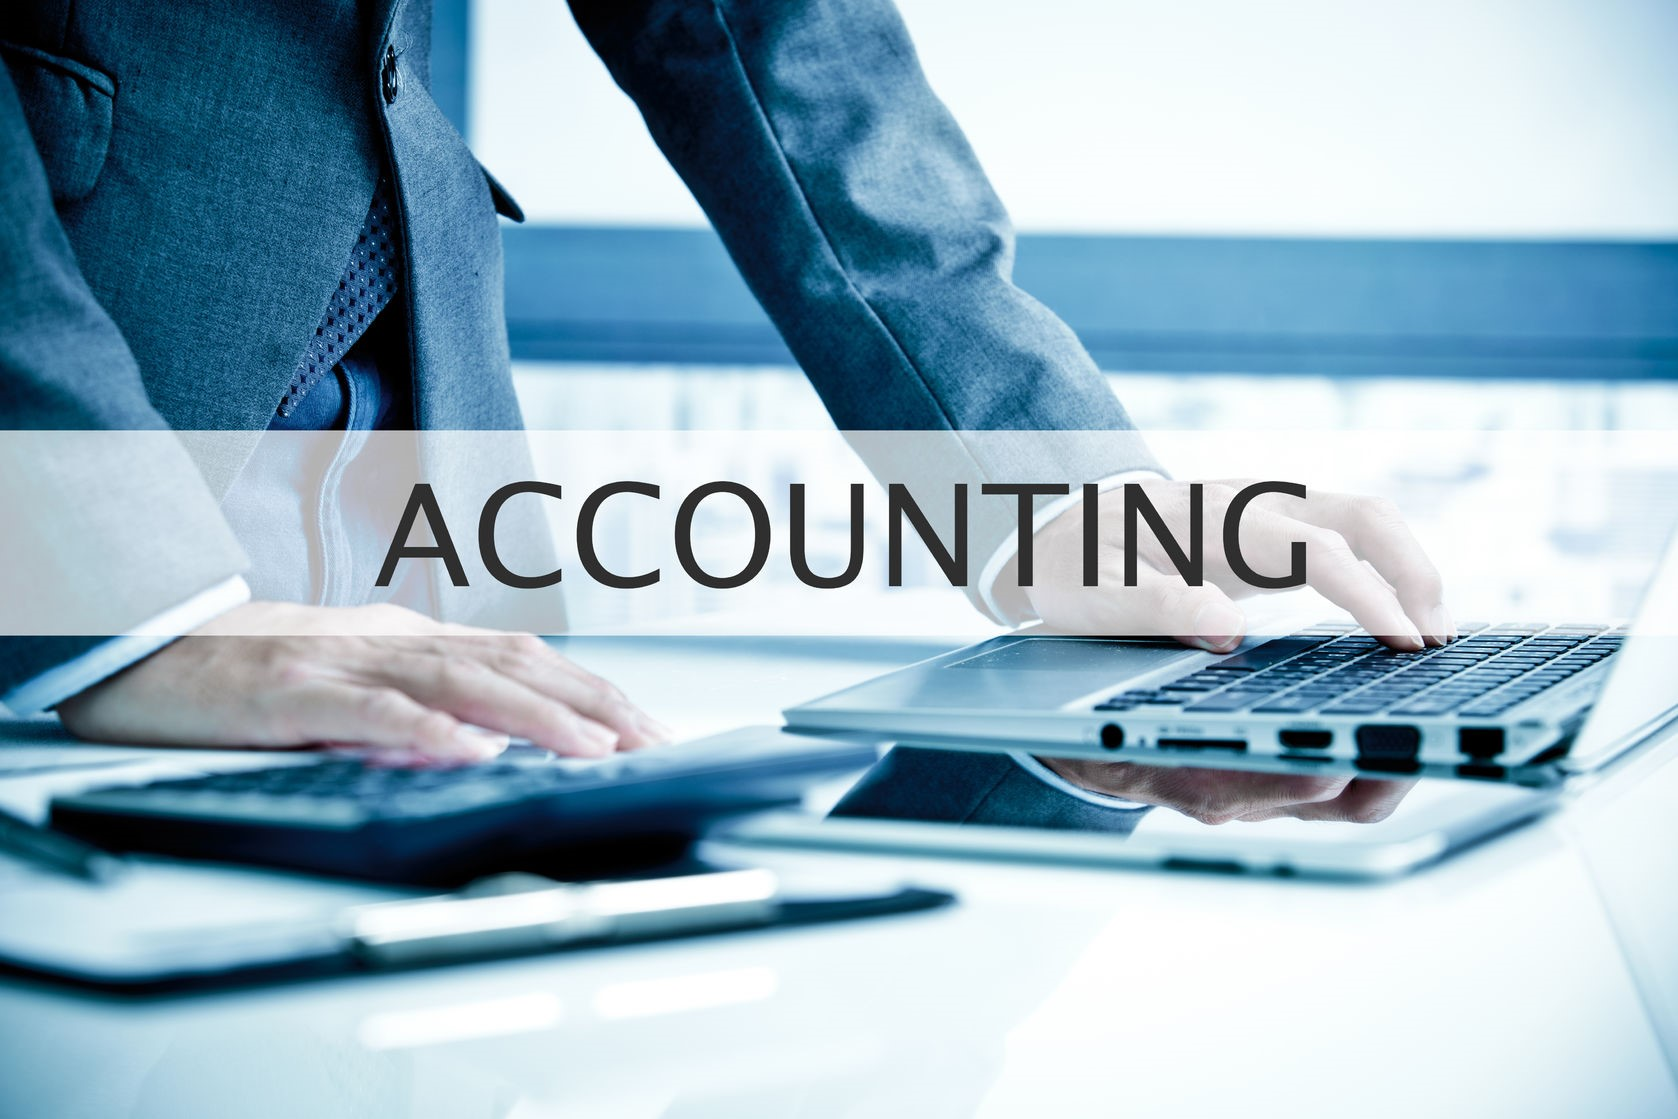 business of accounting Thomson reuters is the world's leading source of intelligent information for businesses and professionals in tax and accounting.